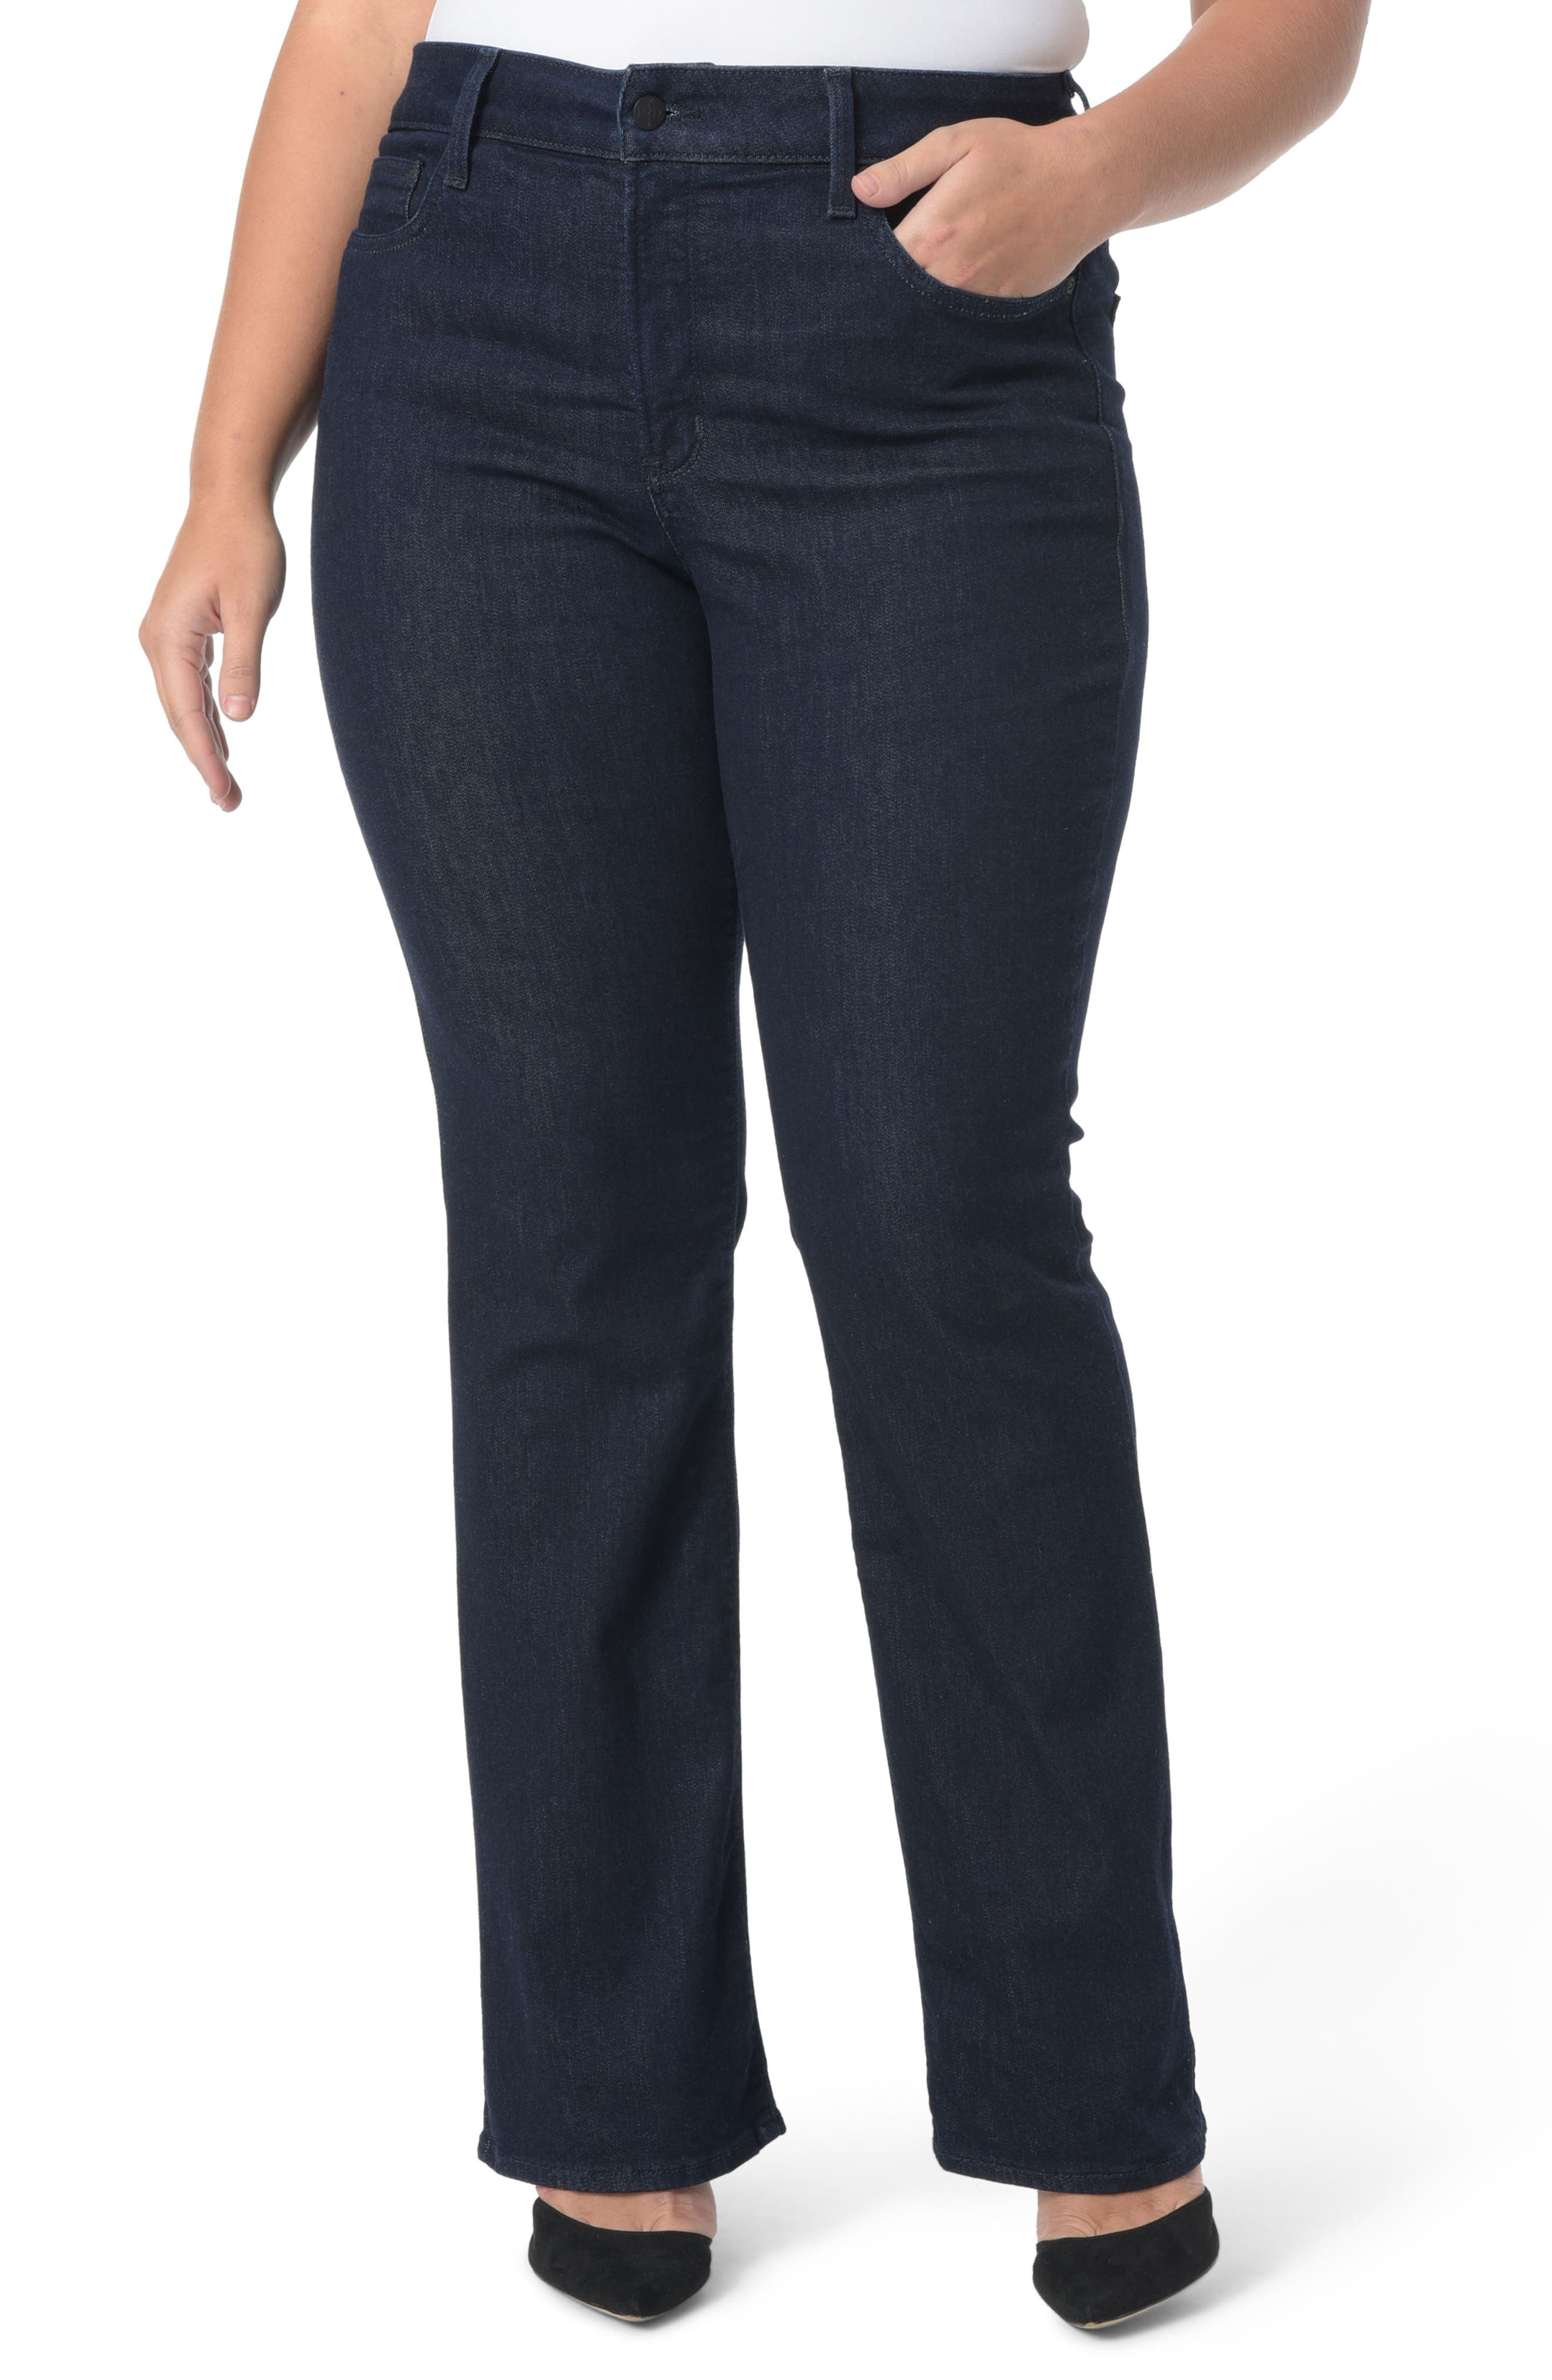 Main Image - NYDJ Barbara Stretch Bootcut Jeans (Plus Size)